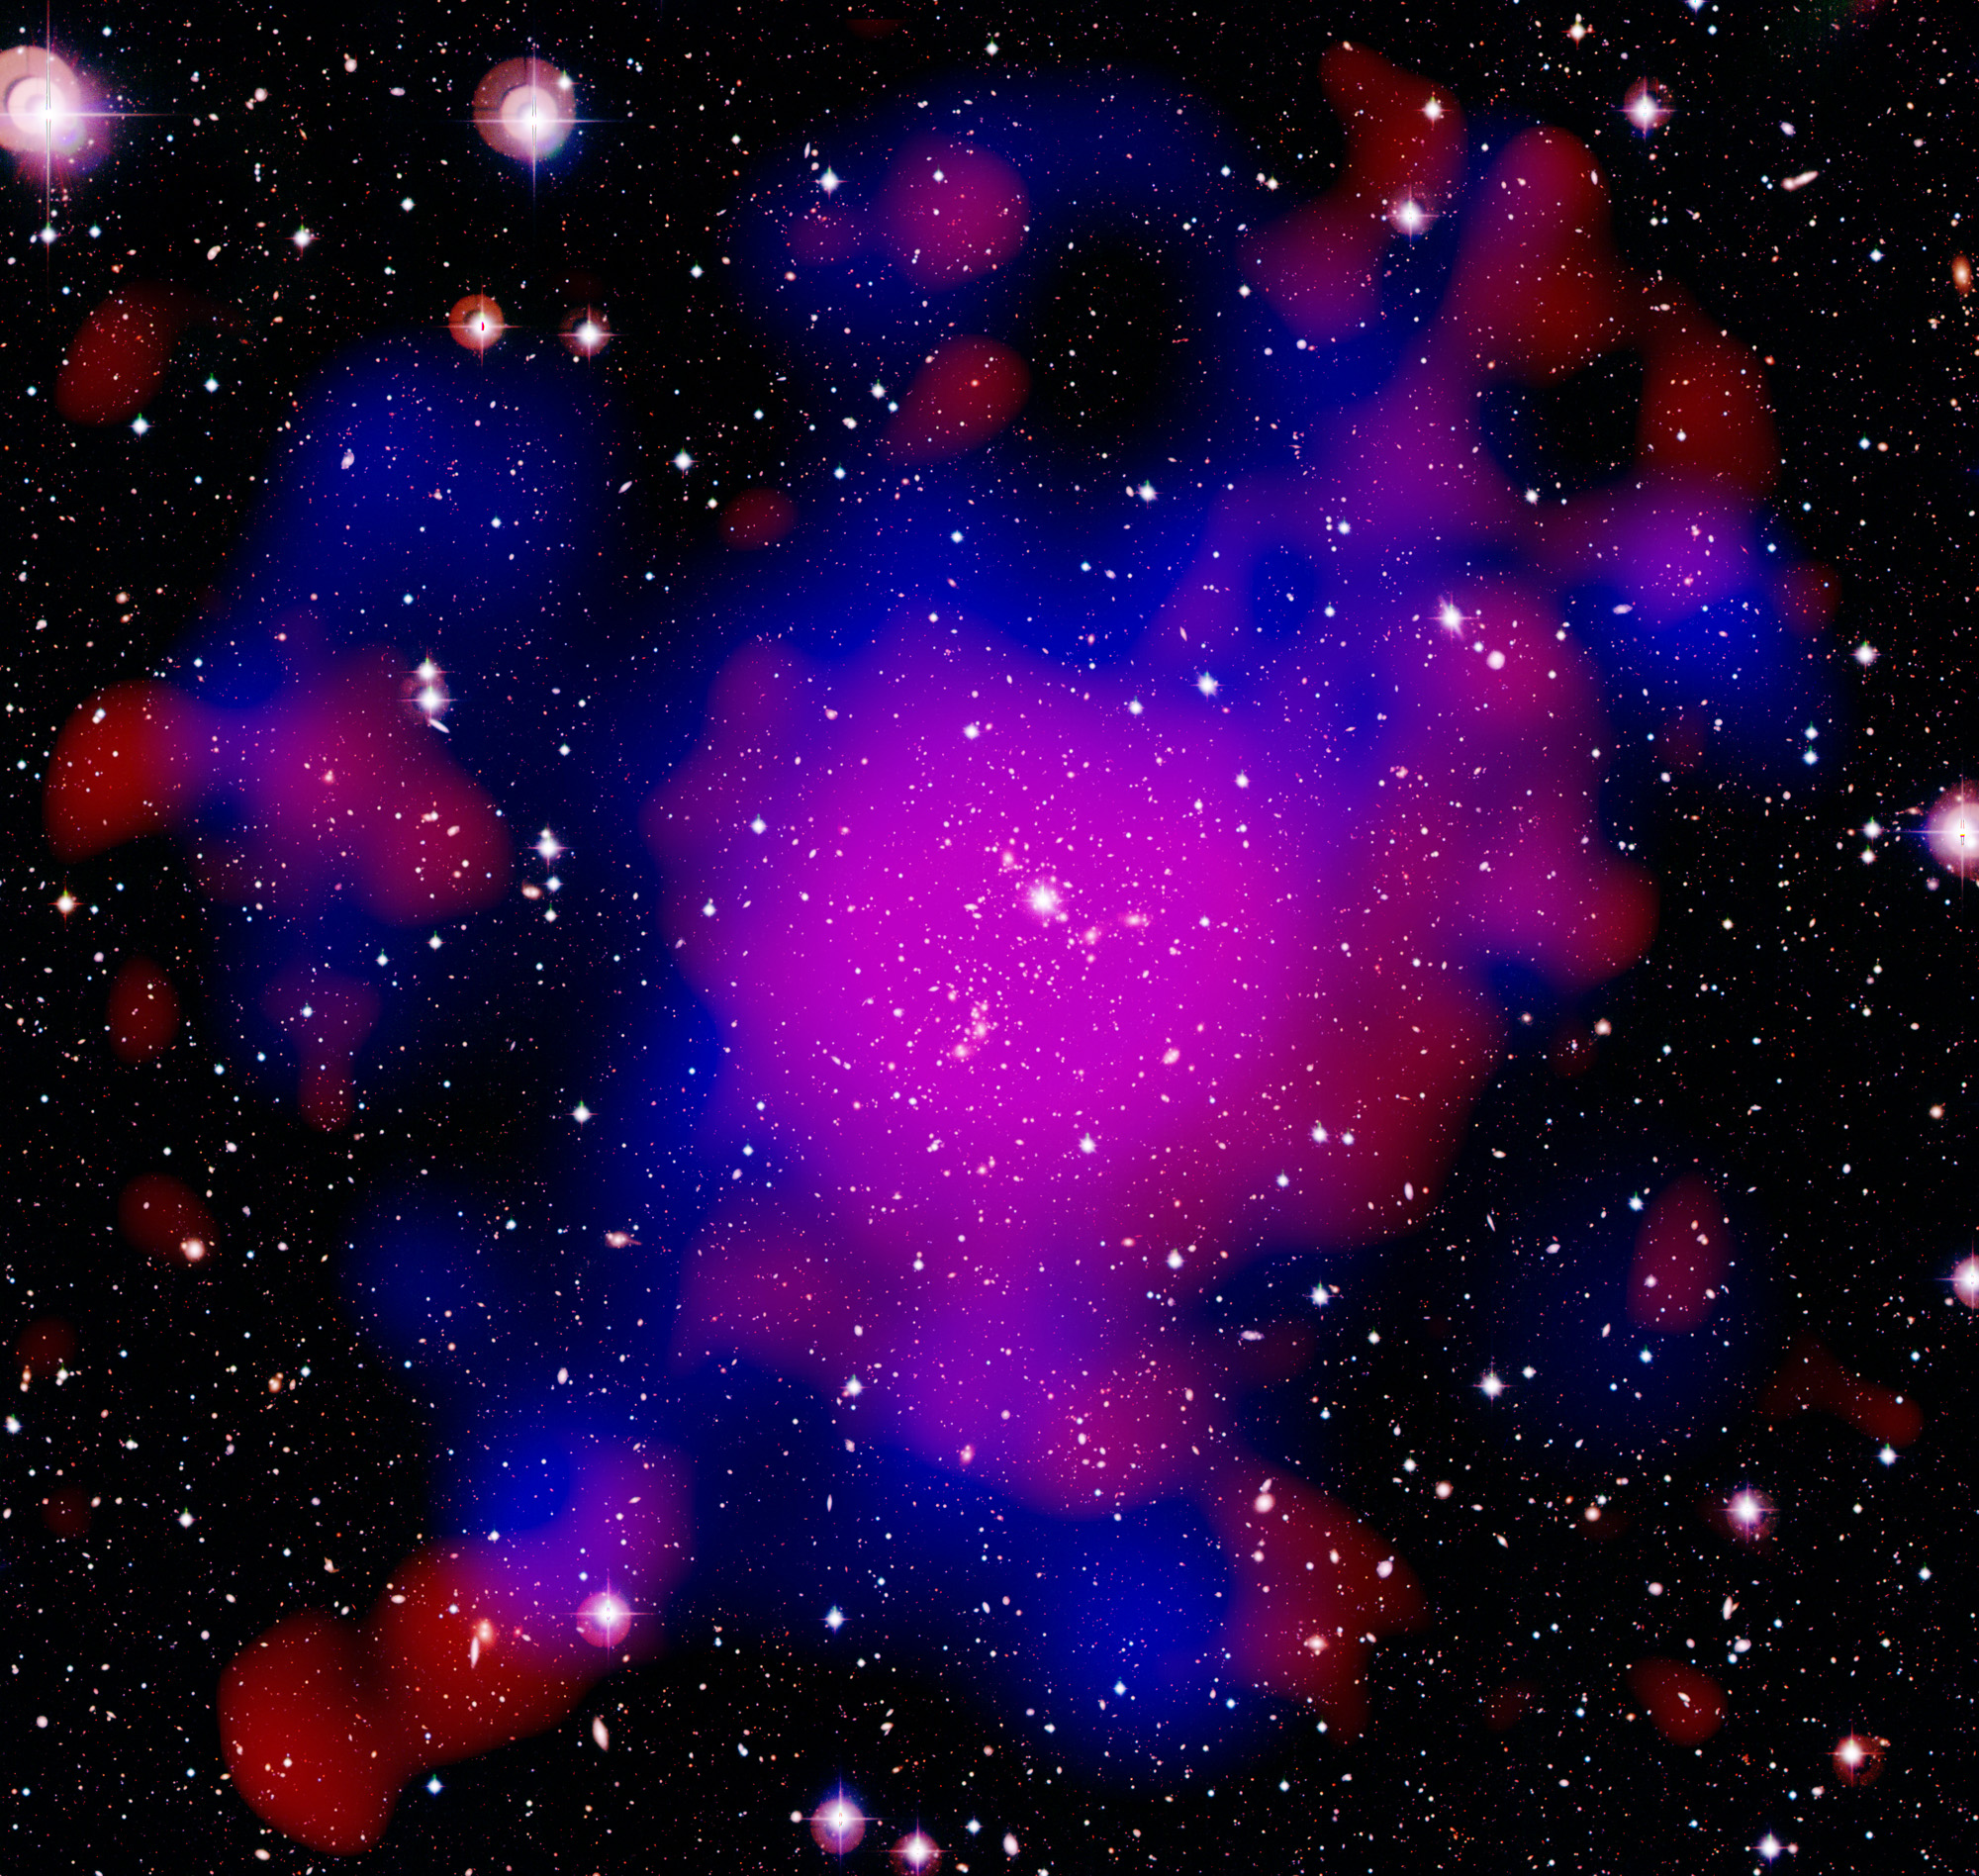 Components of the galaxy cluster Abell 2744, also known as the Pandora Cluster: galaxies (white), hot gas (red) and dark matter (blue). The image measures about half a degree across. The image is sprinkled with foreground stars belonging to our Galaxy, the Milky Way, which are visible as the roundish objects with diffraction spikes. Image credit: ESA/XMM-Newton (X-rays); ESO/WFI (optical); NASA/ESA & CFHT (dark matter)